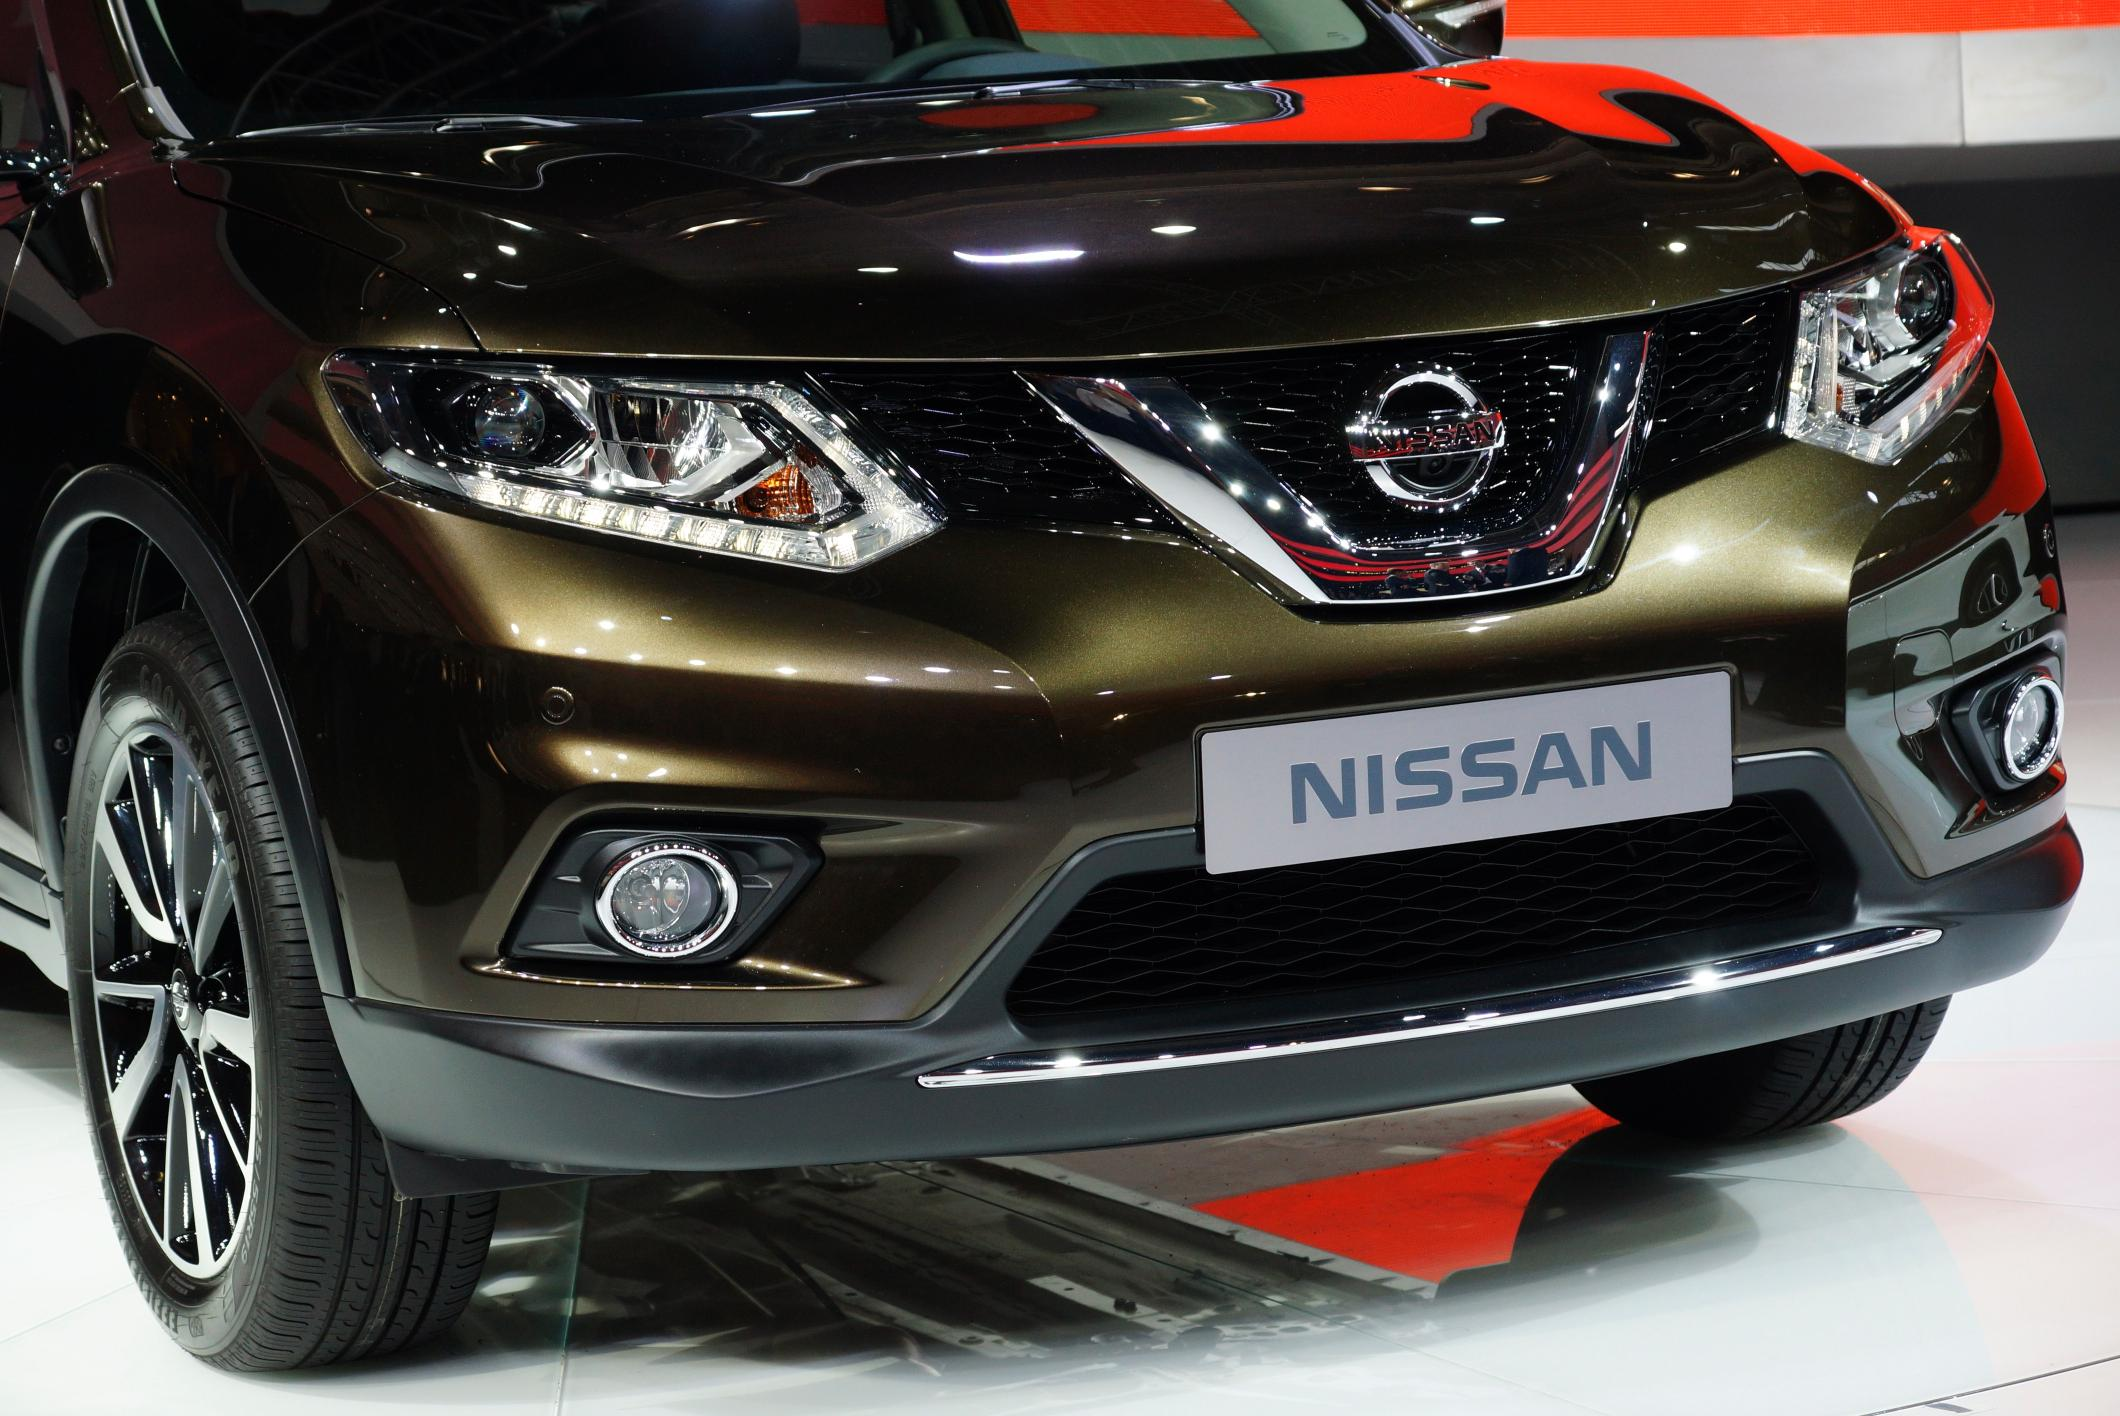 Car // Nissan // New Nissan X-Trail SUV planned for Indian car market